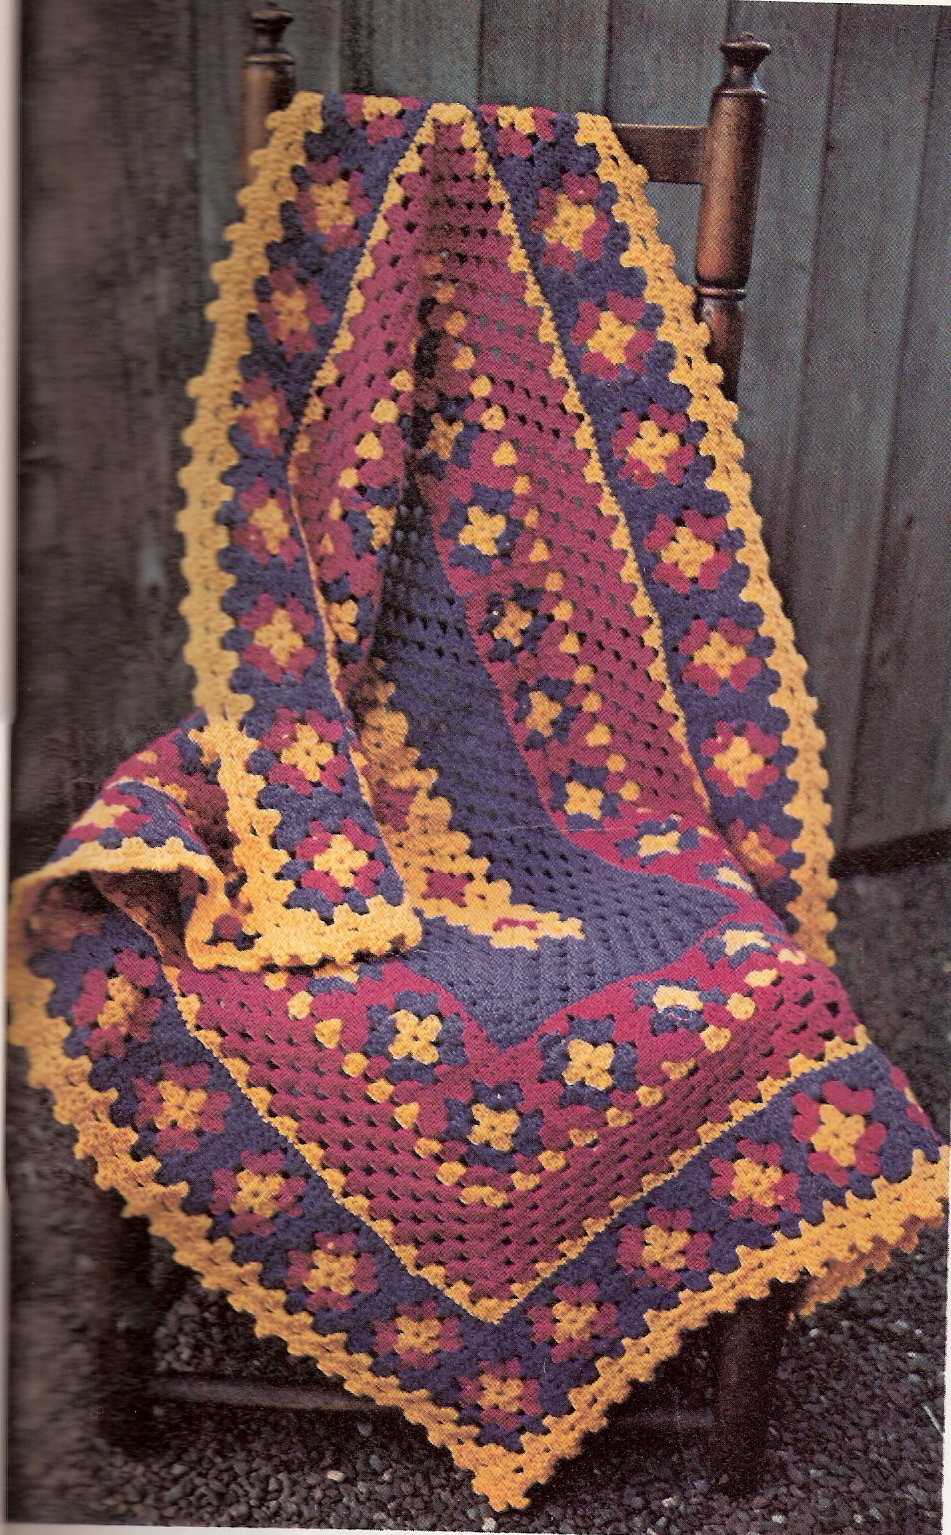 Crochet Patterns For Afghan : free crochet instruction to make afghans